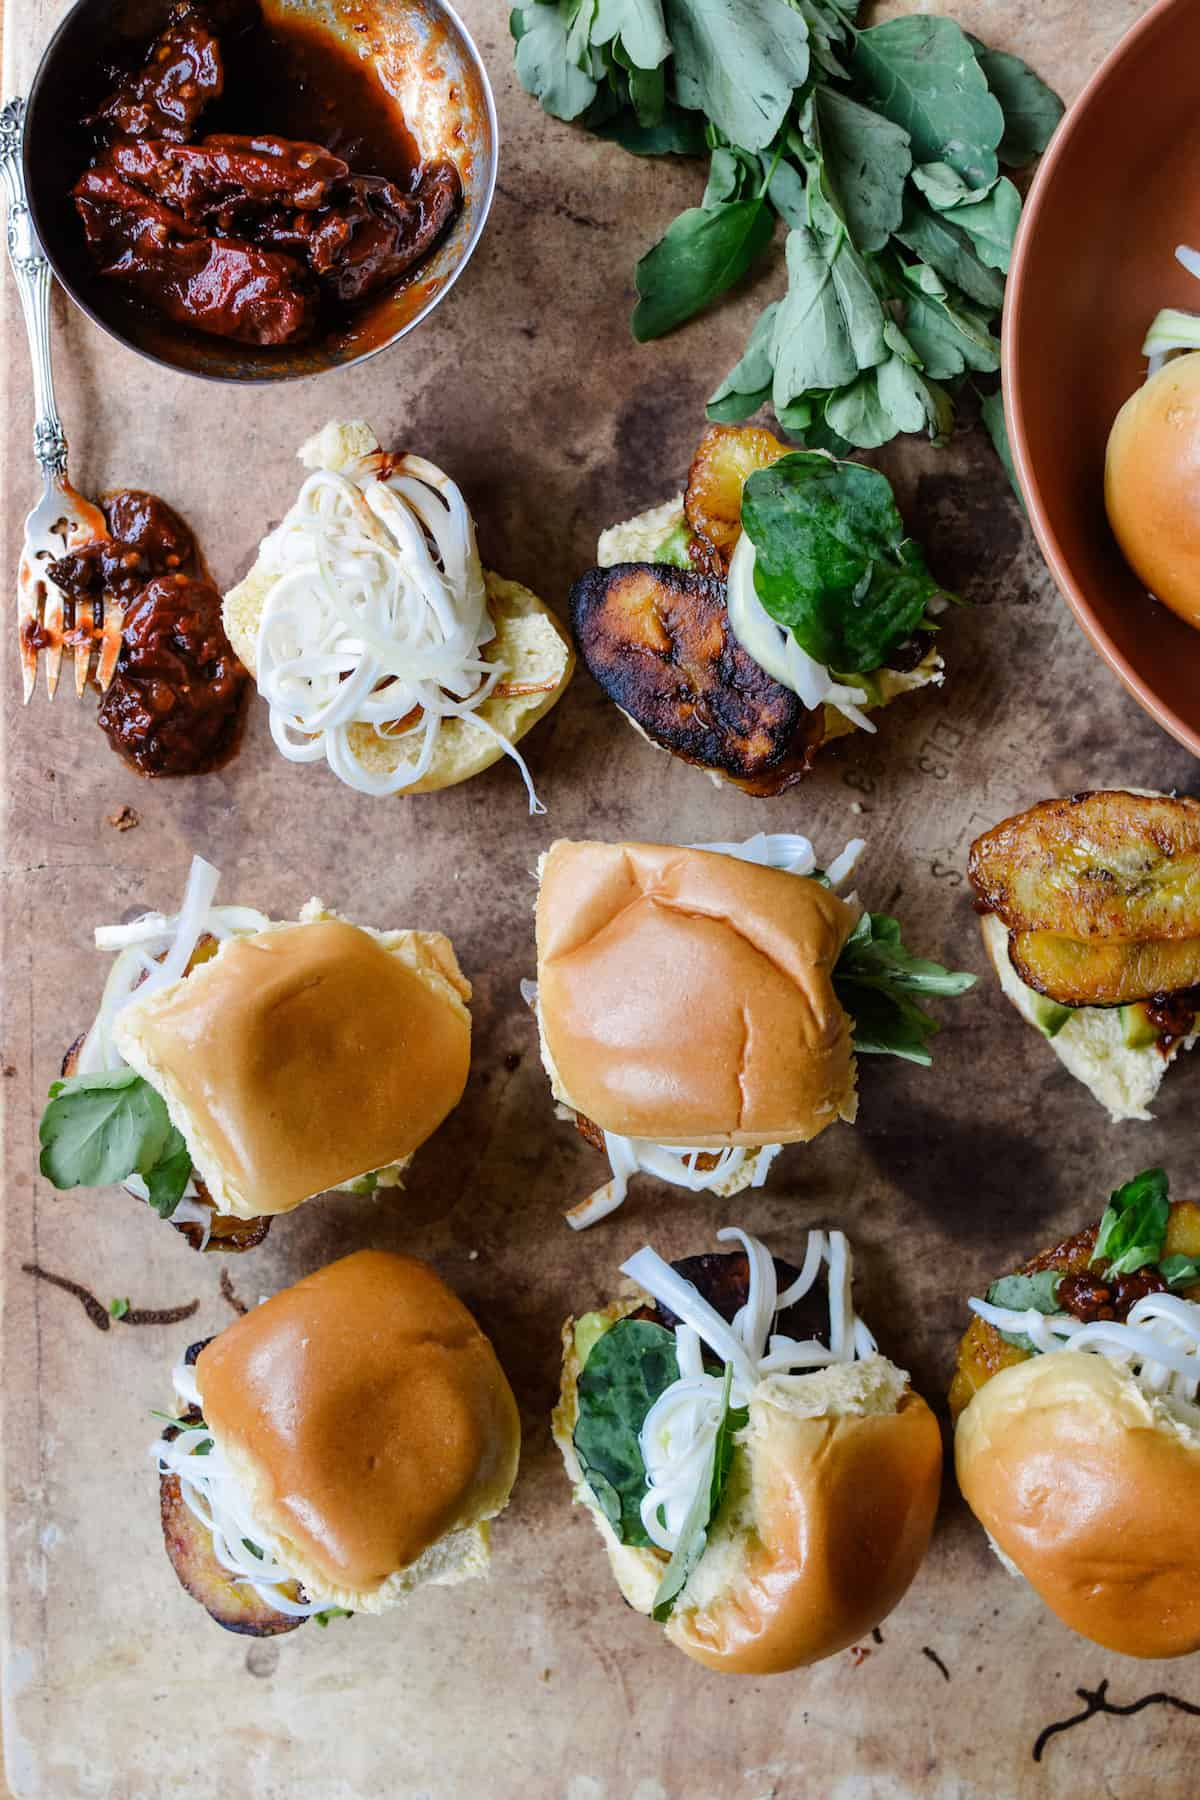 Several slider sandwiches sitting on a table next to green Papalo leaves and a metal dish of chipotle peppers in adobo sauce sitting near by.